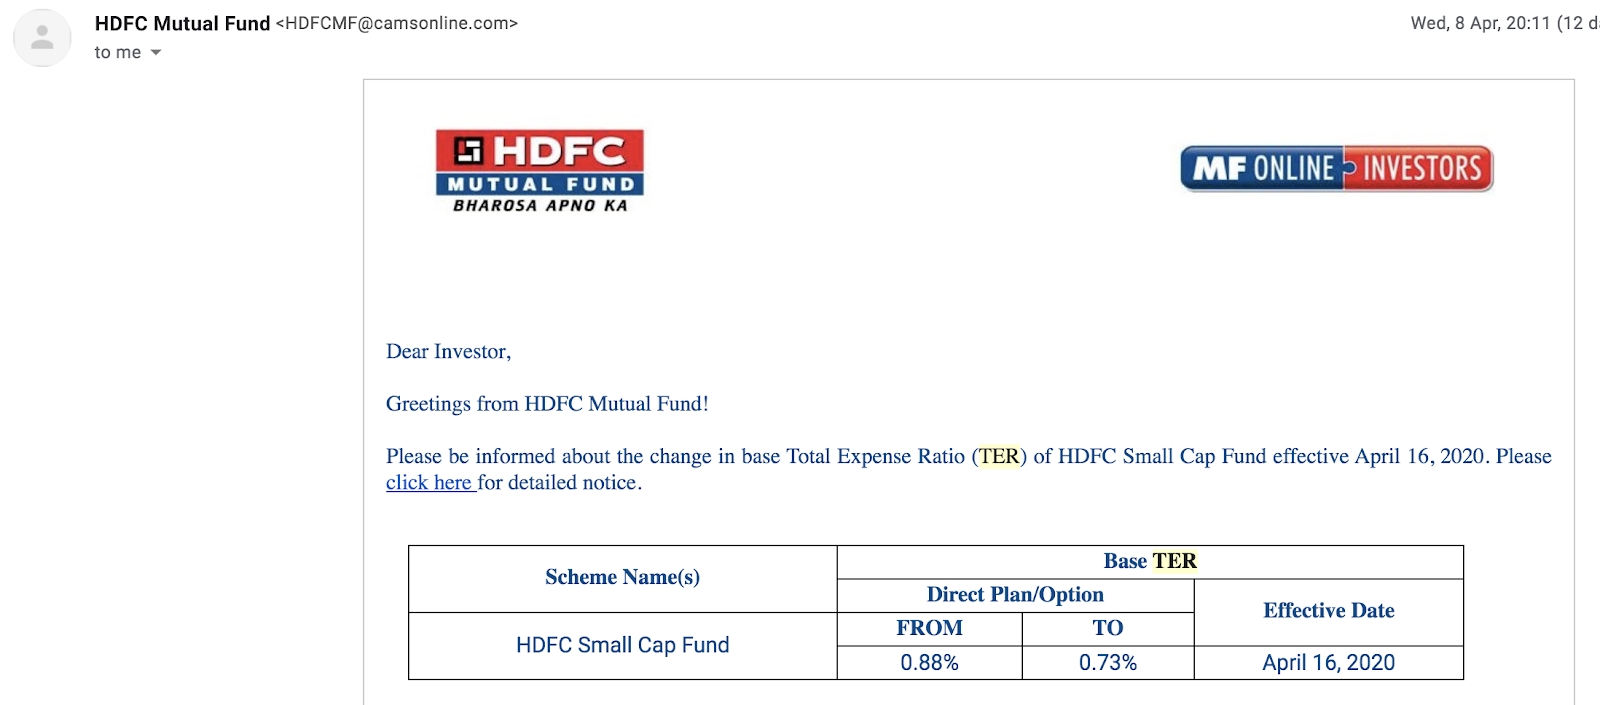 HDFC Mutual Fund announcement of change in TER on Small Cap Fund